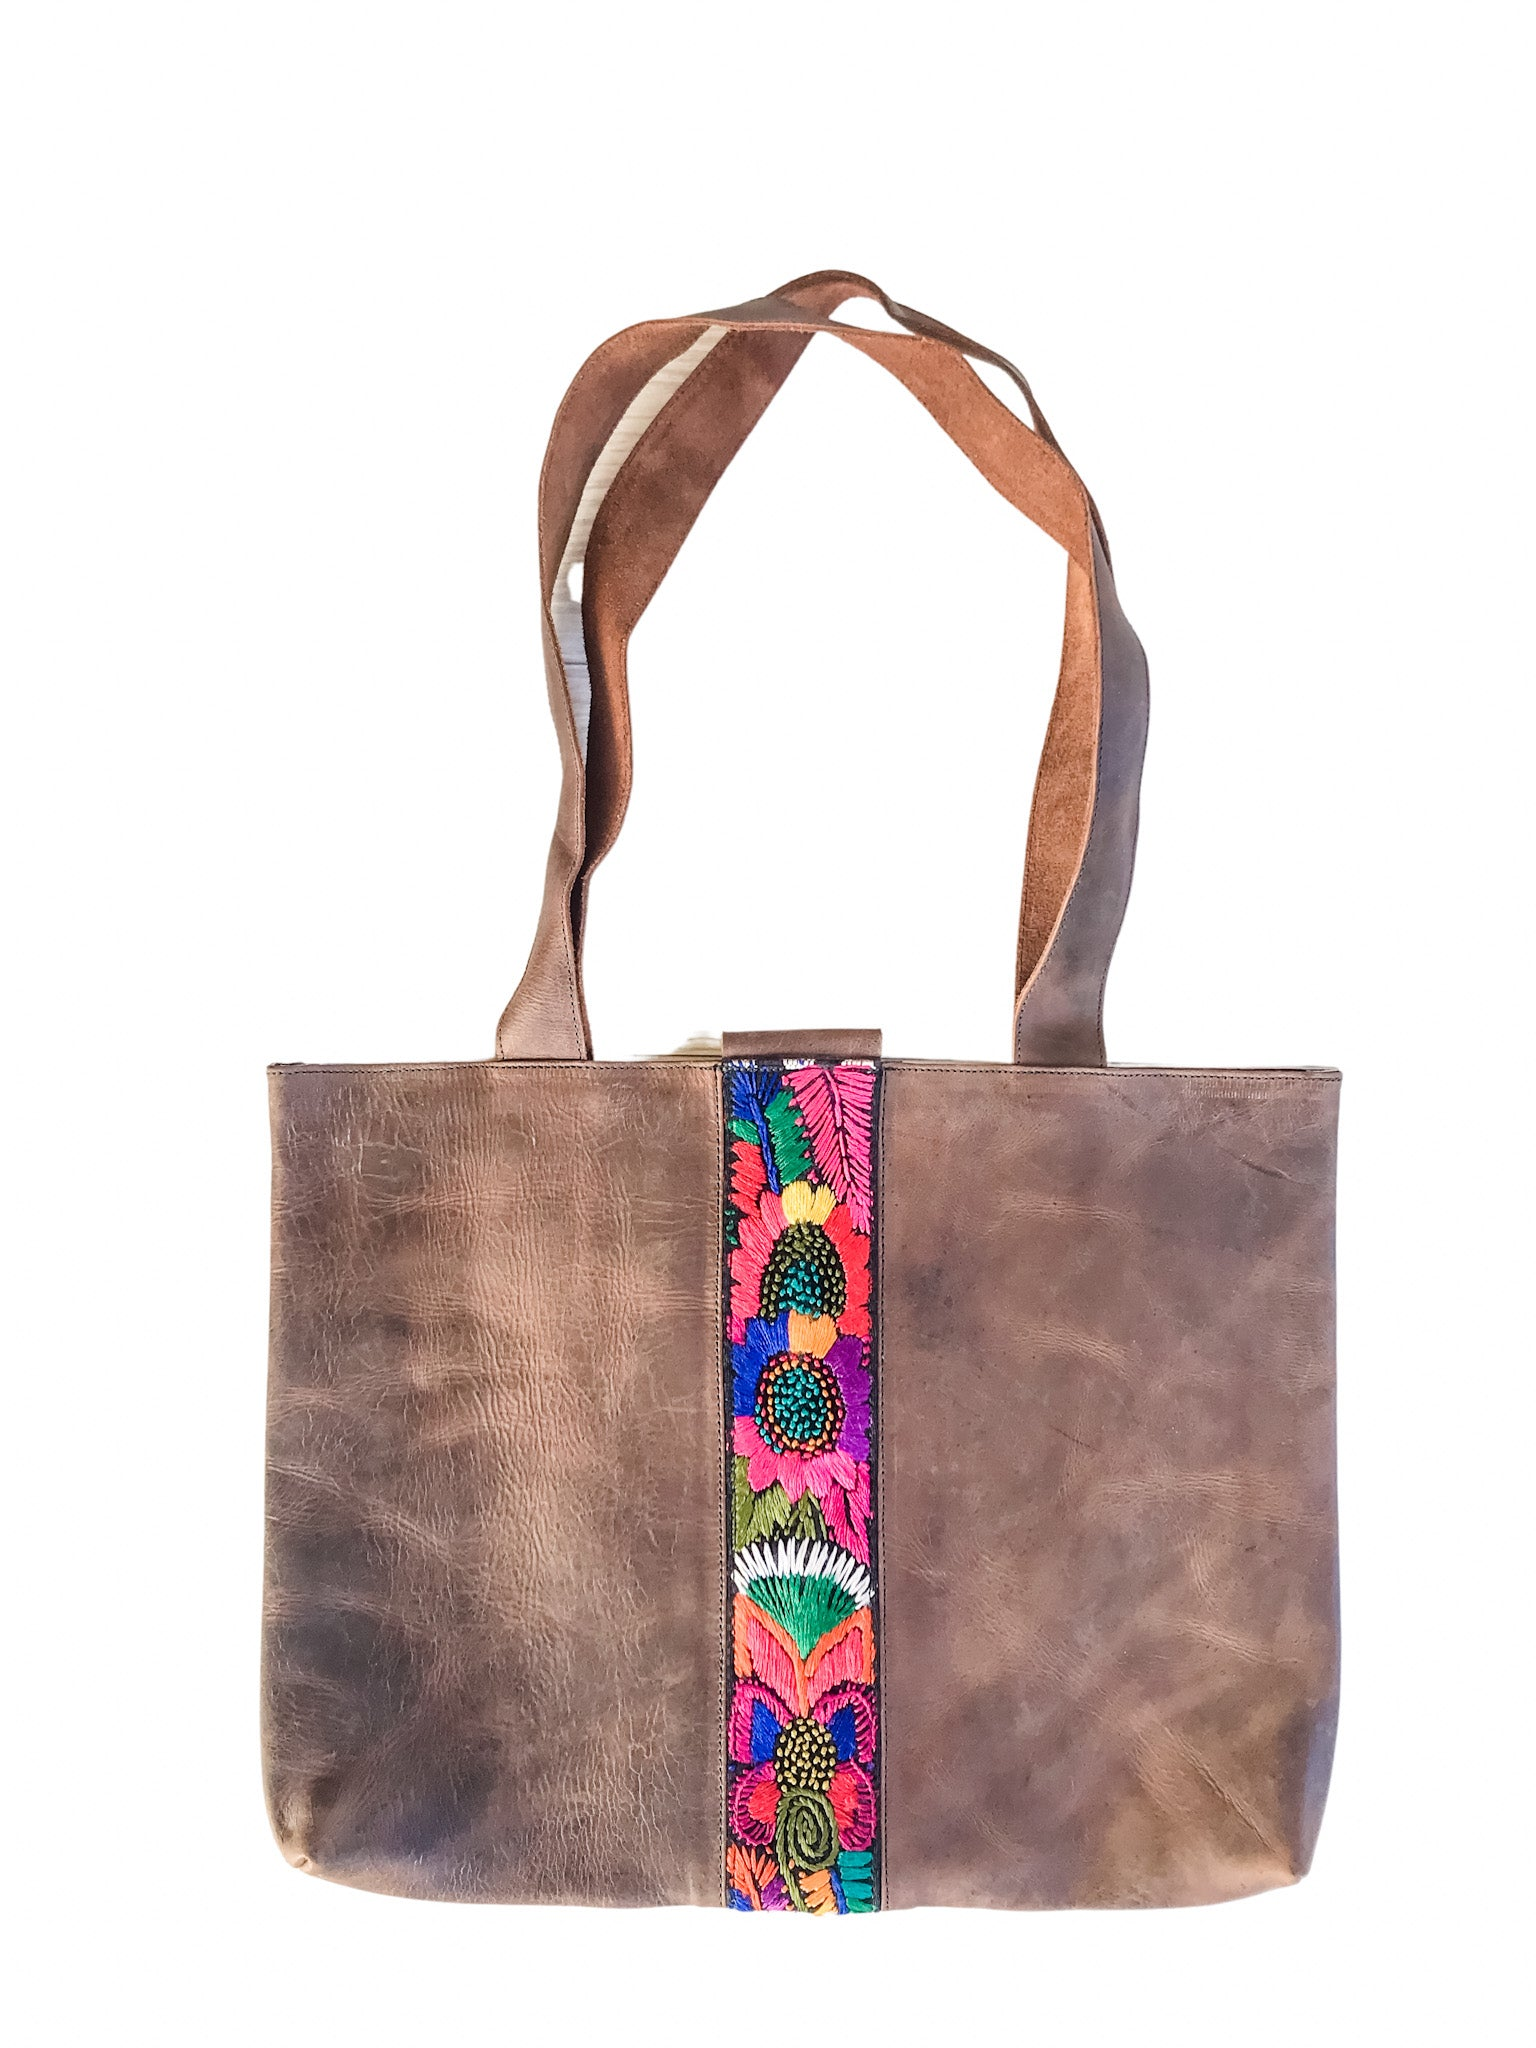 Abril Guatemalan Leather Tote Bag - 10702